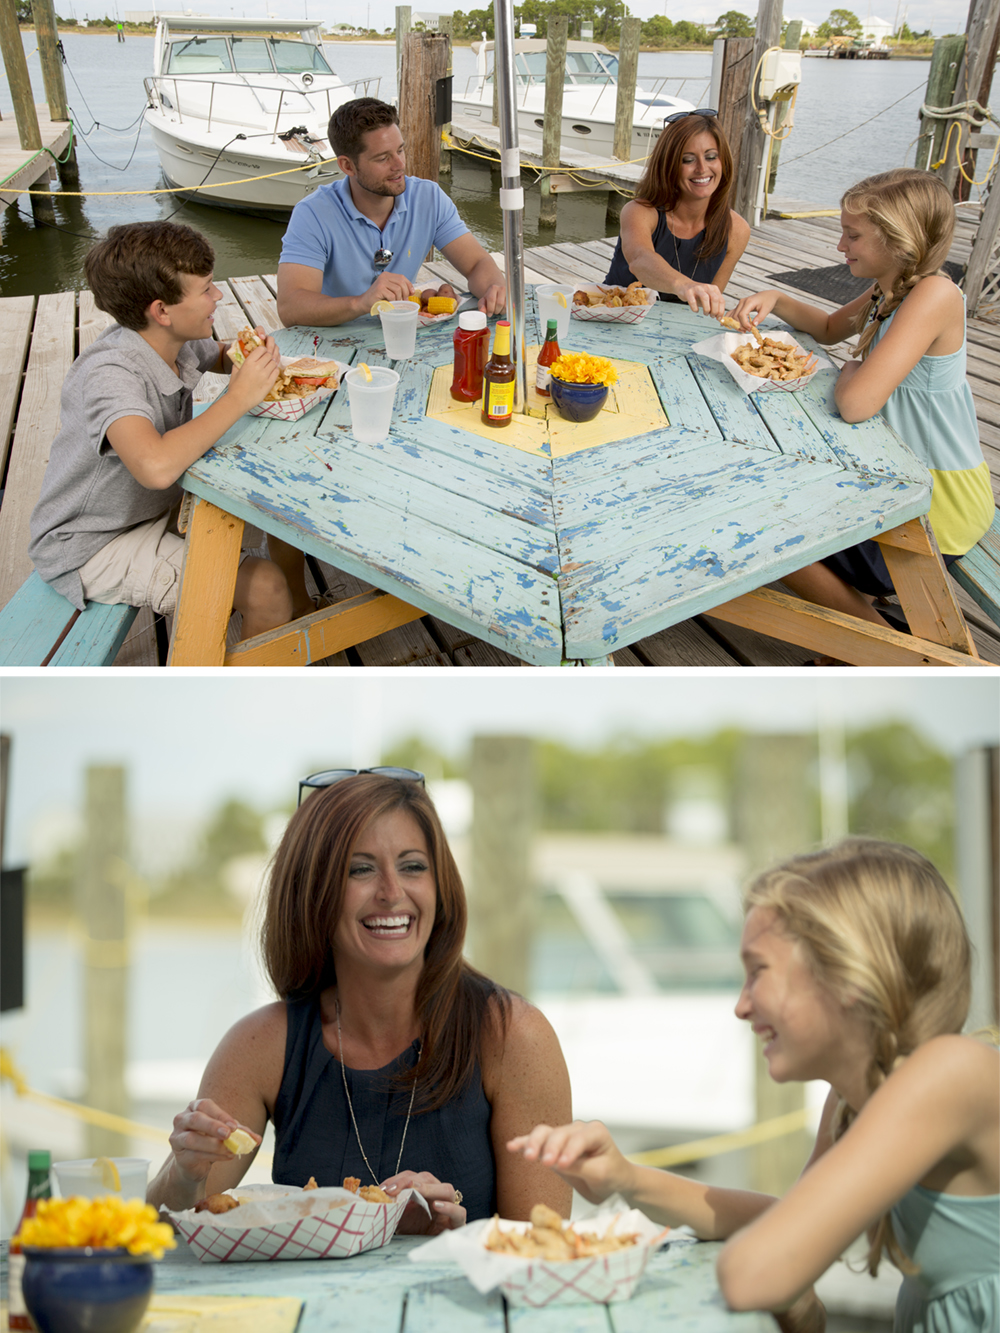 A family enjoying the fresh catch at a popular restaurant versus a relaxed family setting